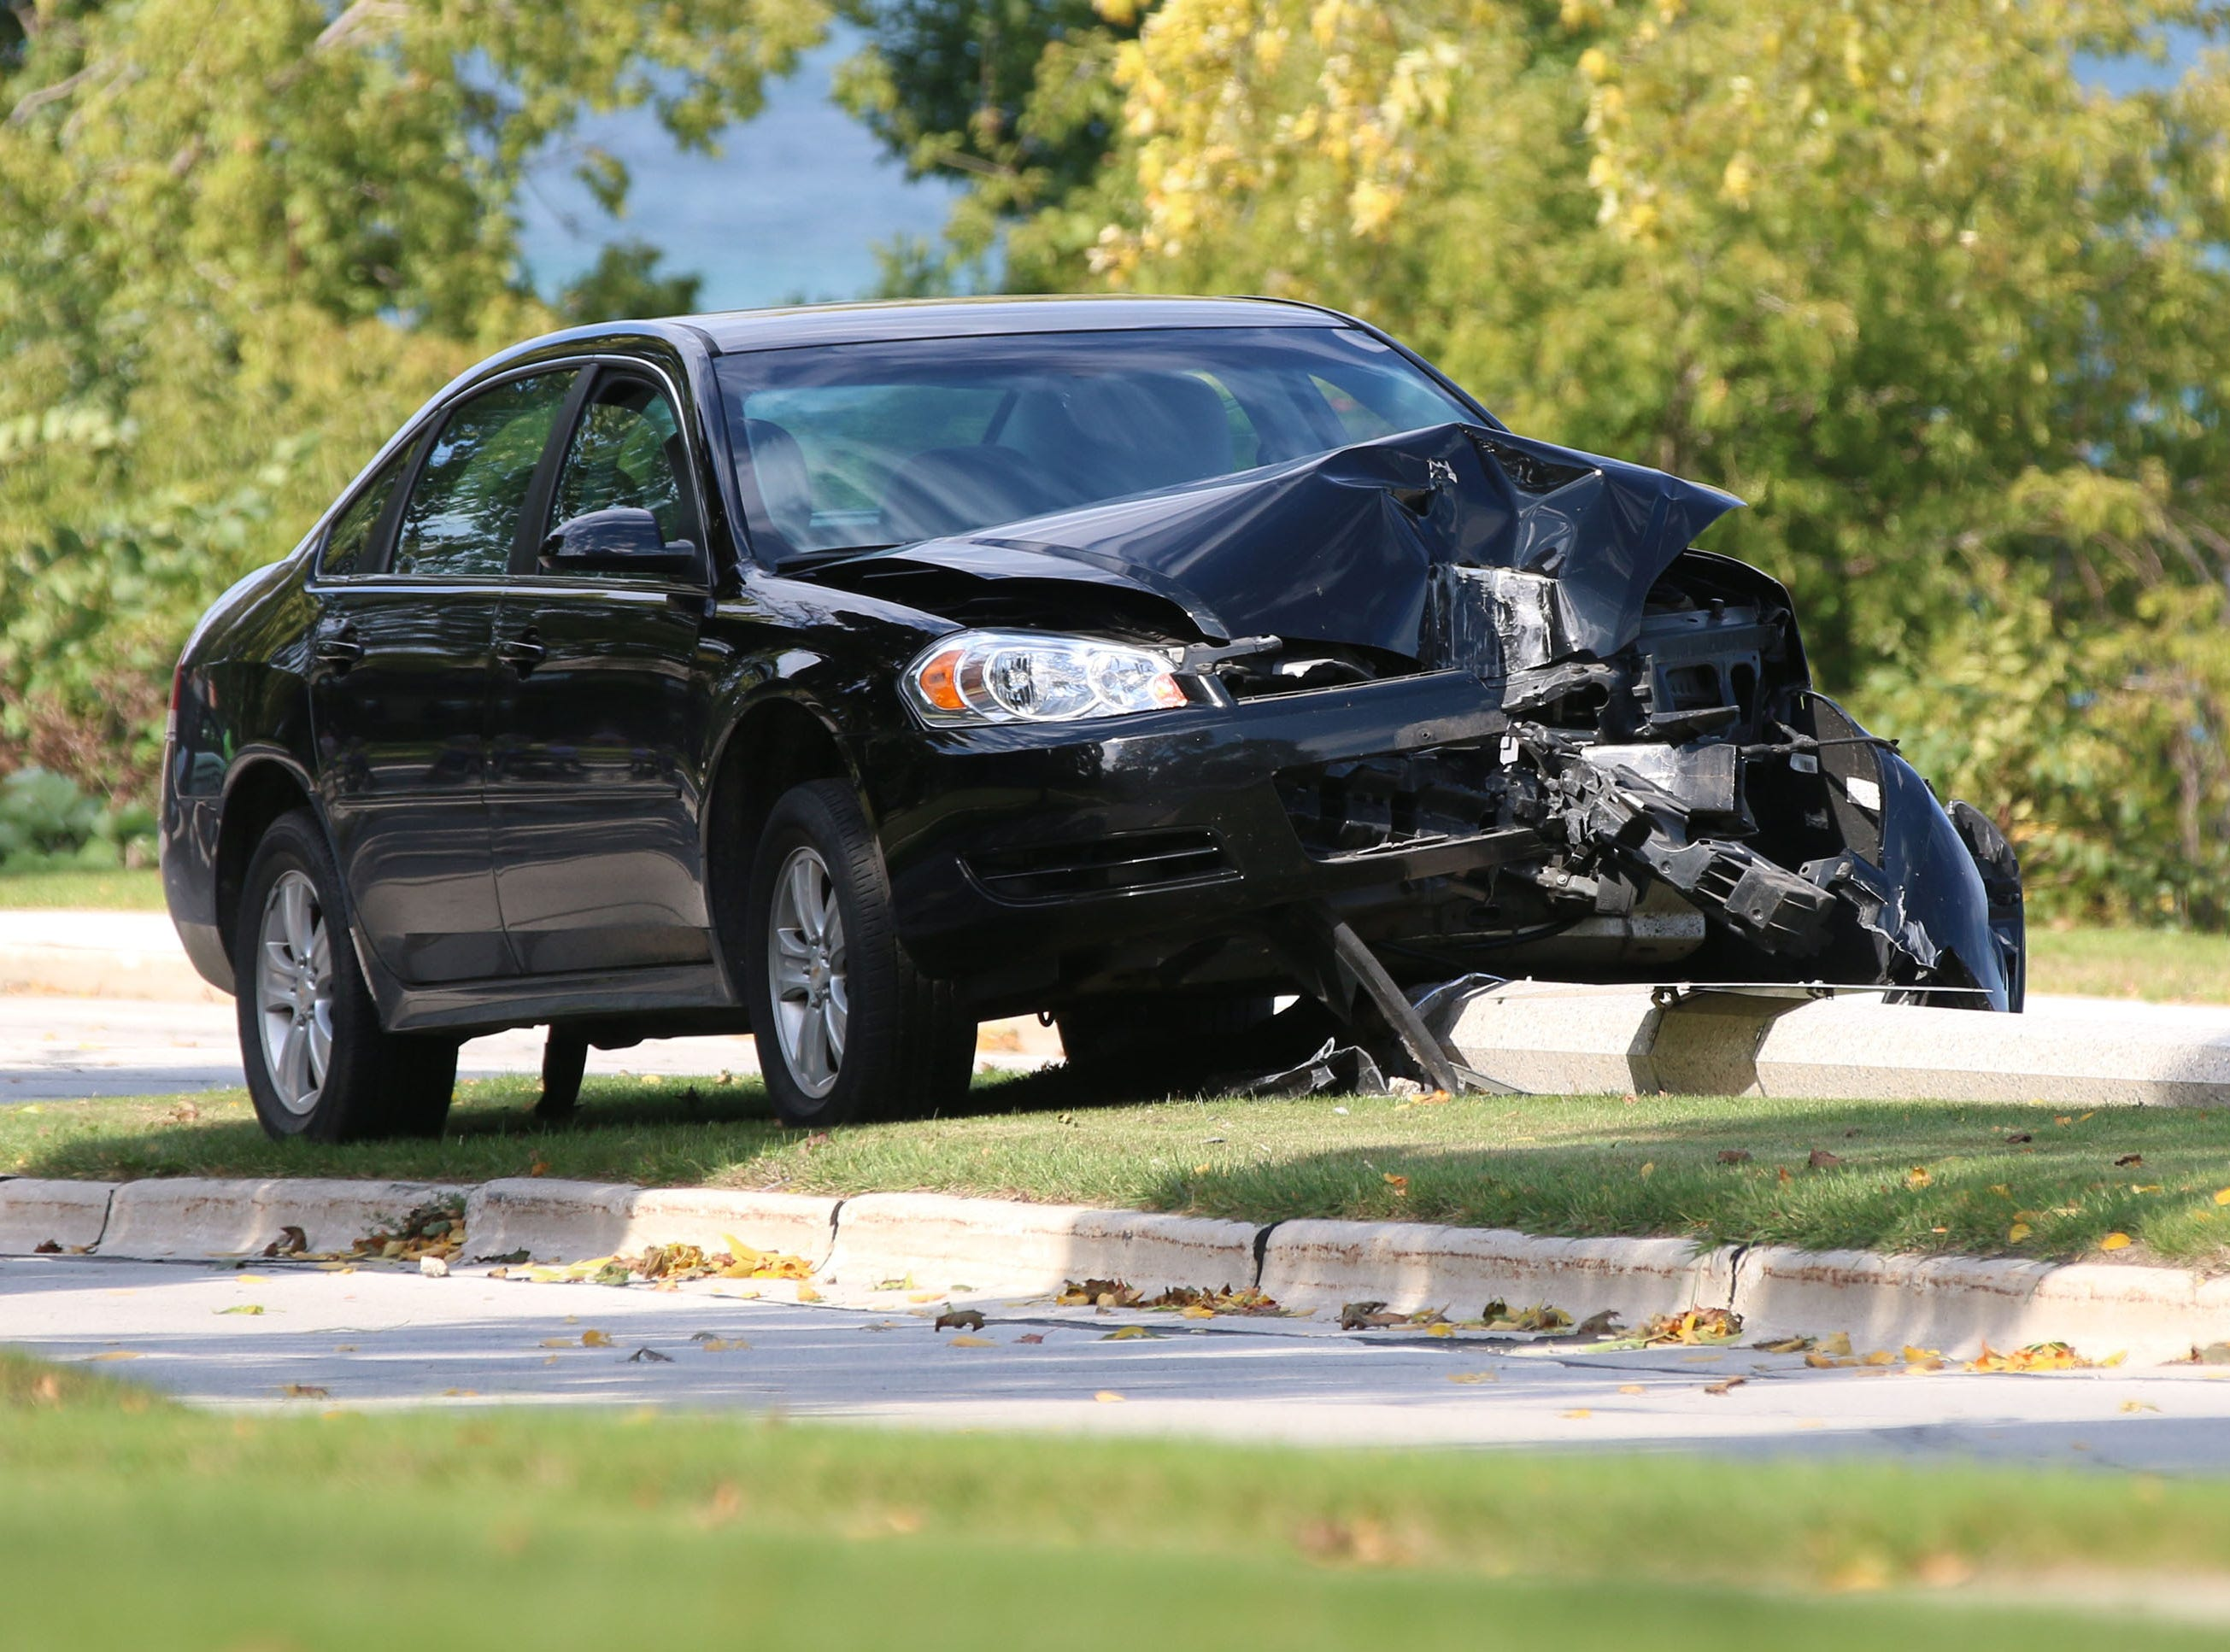 The front end of a car sustained damage when it hit a light pole, Thursday, September 27, 2018, in Sheboygan, Wis. The drivers side air bag deployed but there was no mention if there were injuries.